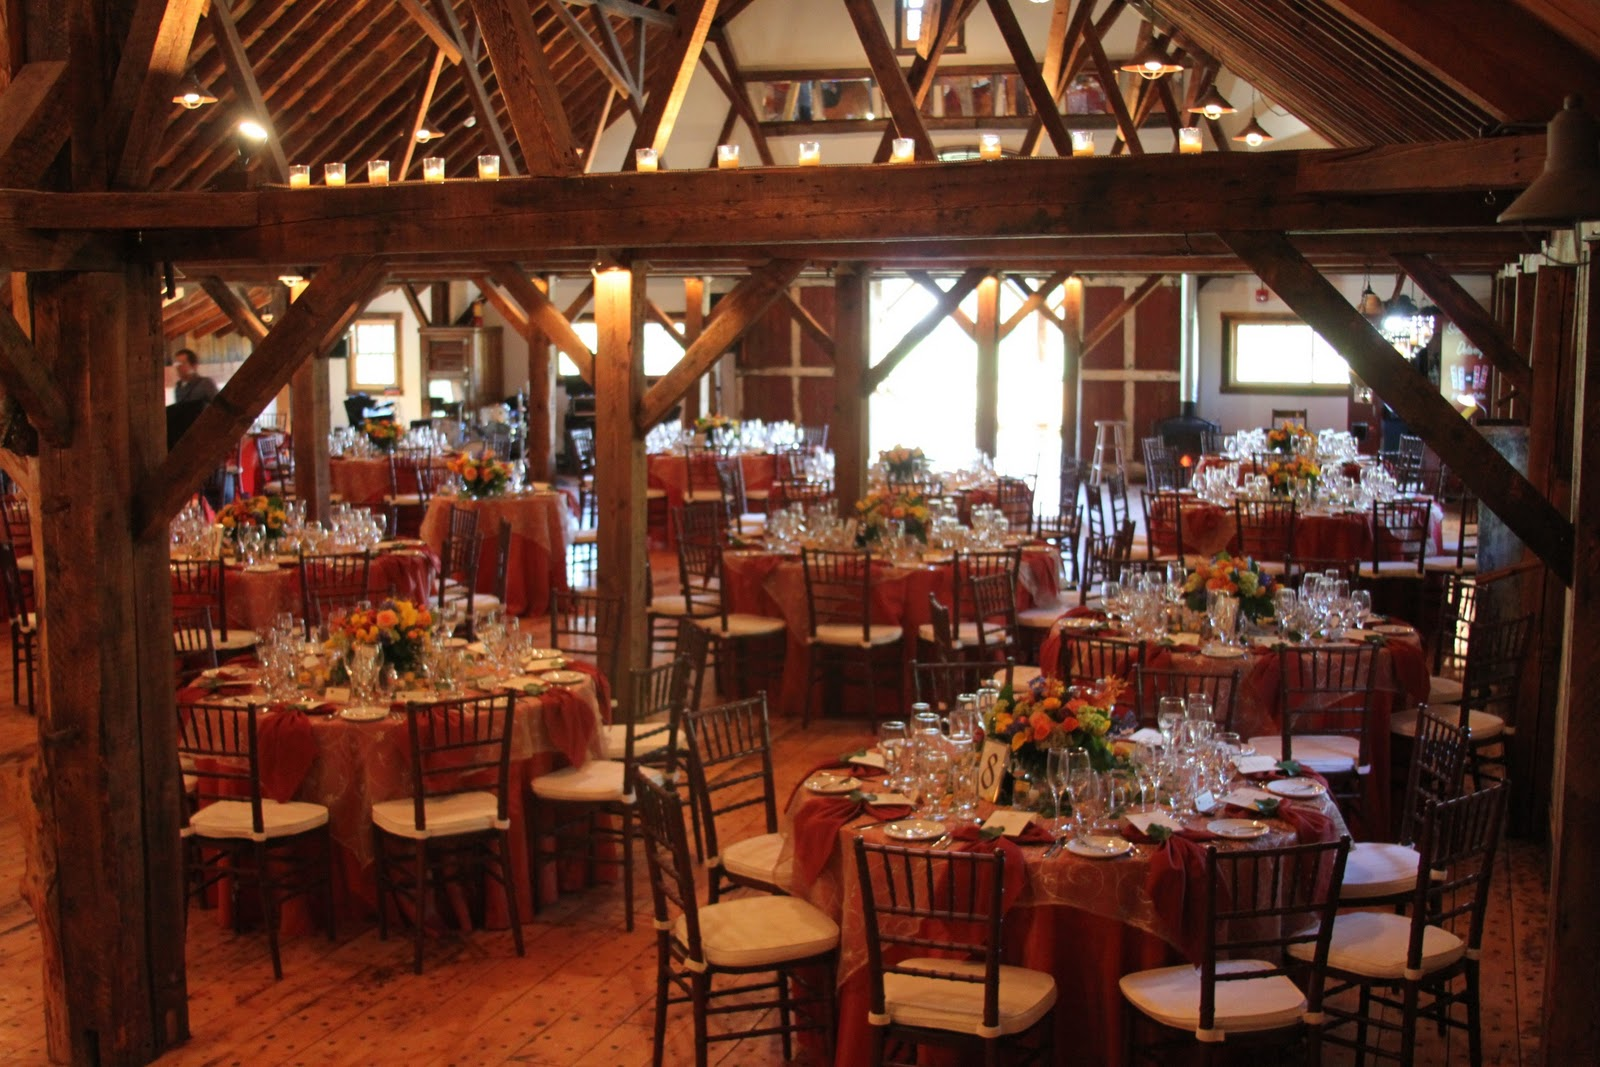 Sarahs Autumn Wedding The Stonewell Barn In October Vermont